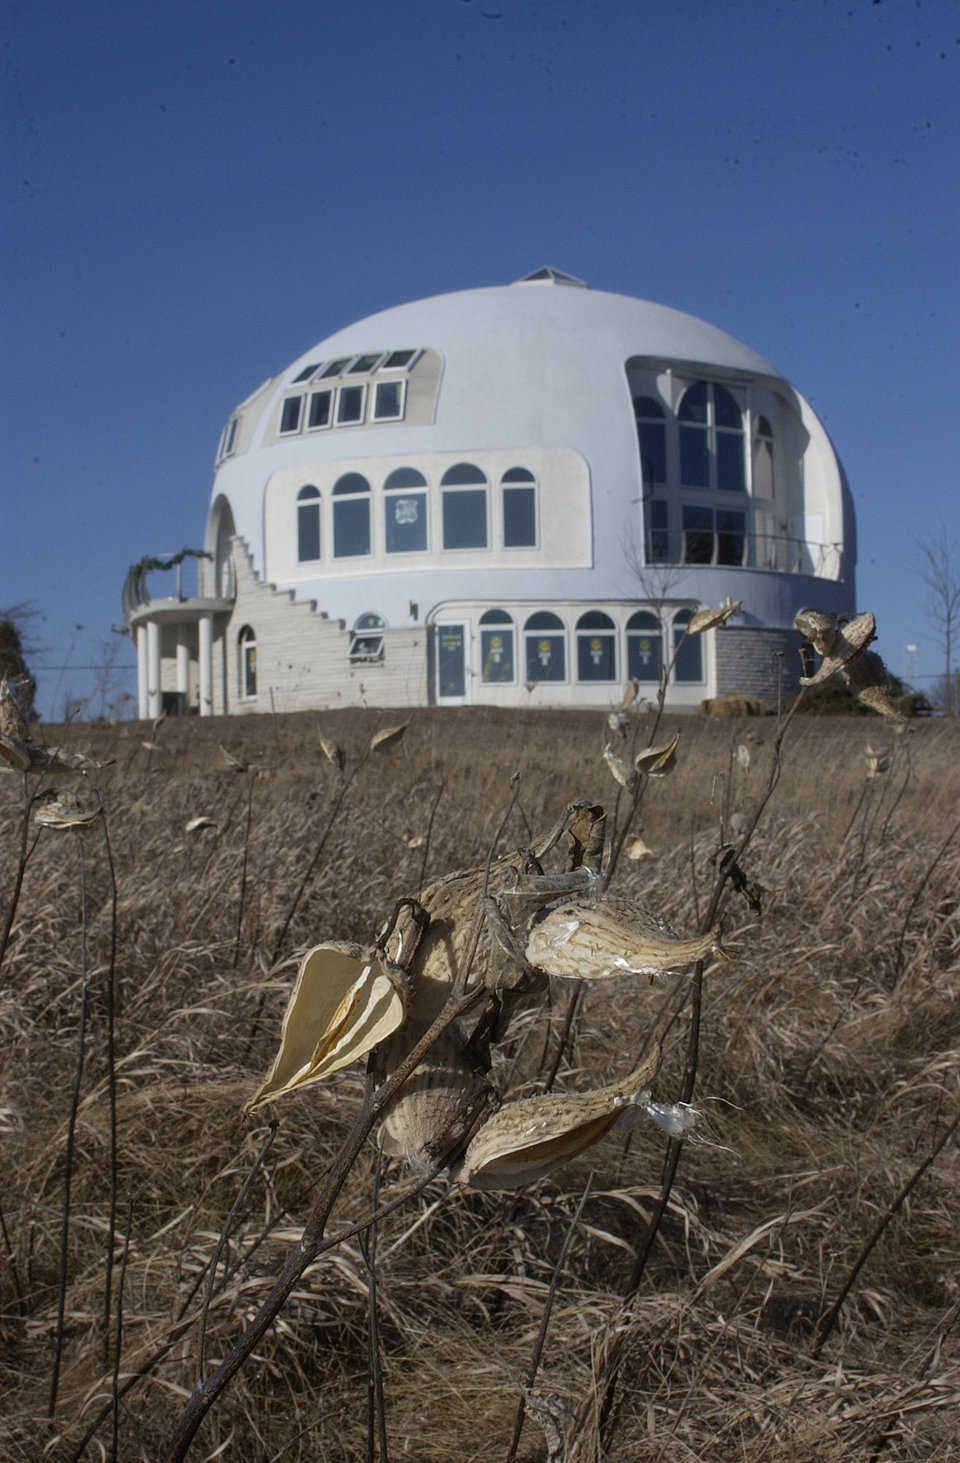 The Disappearing Dome — This dream-come-true home in Manitowoc, Wisconsin is a Monolithic Dome with a diameter of 55 feet and three stories. It overlooks Lake Michigan and on foggy days because almost invisible.